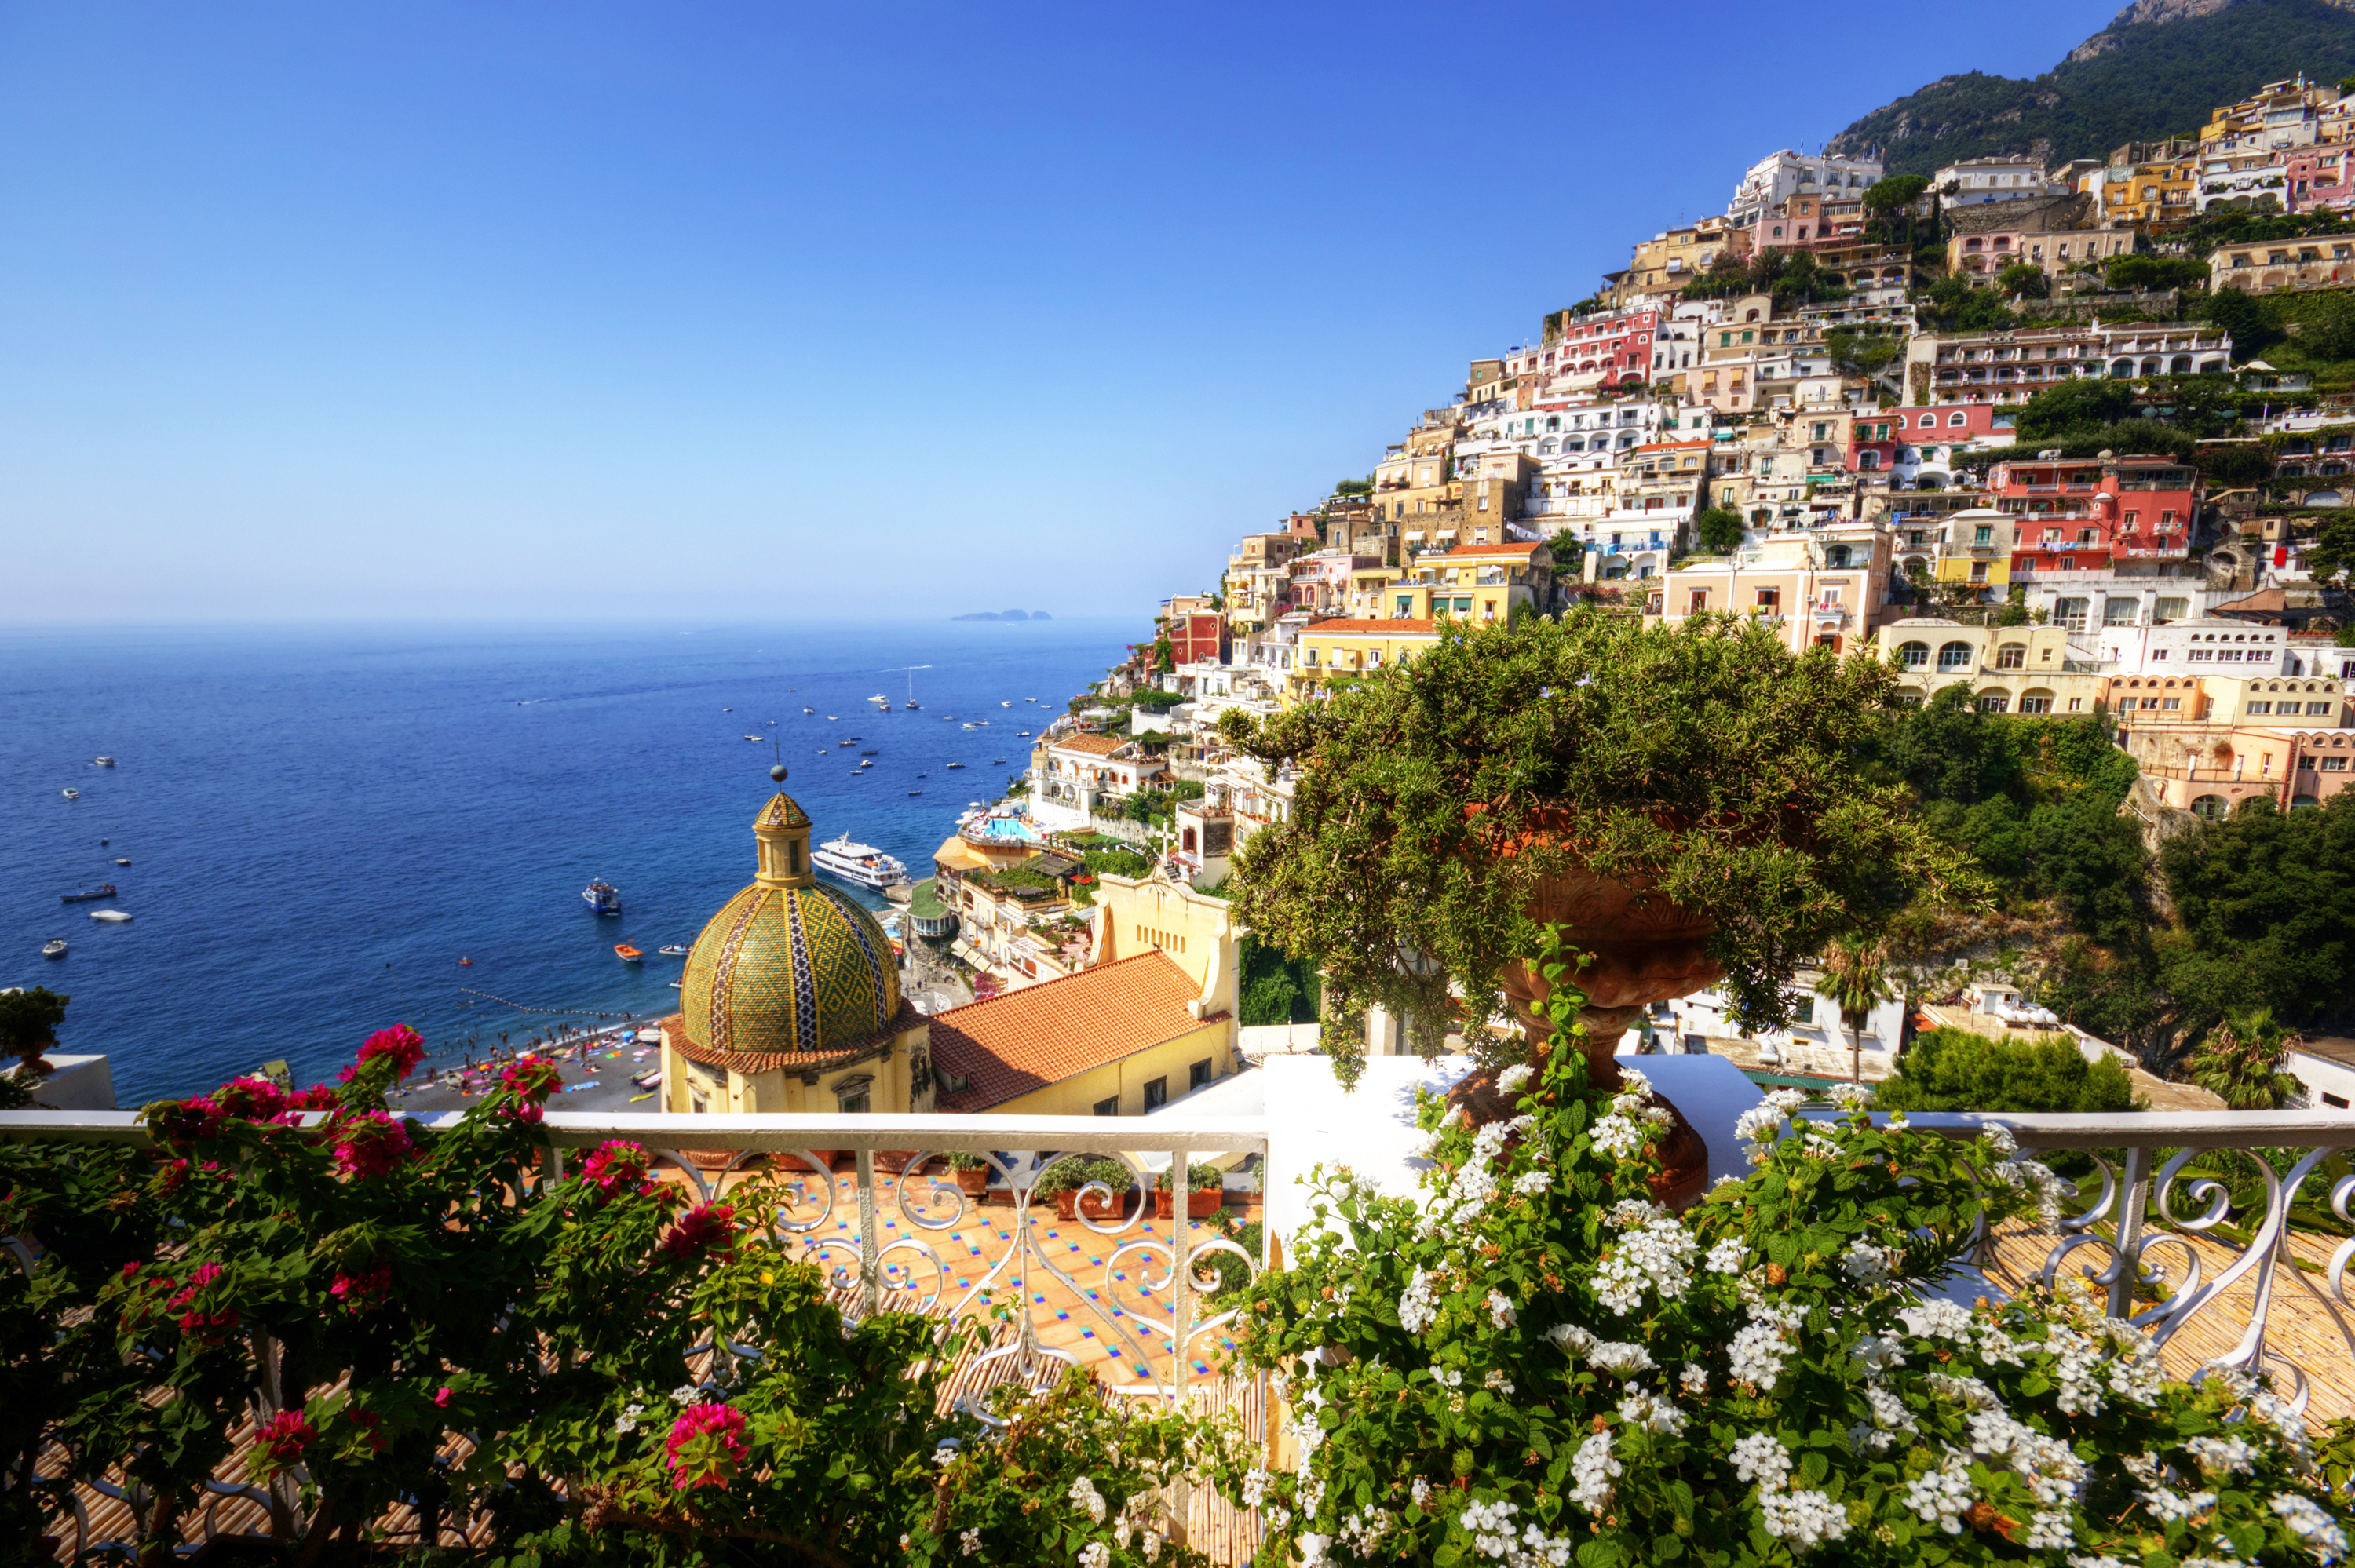 SHORE EXCURSIONS - Pompeii - Sorrento - Positano